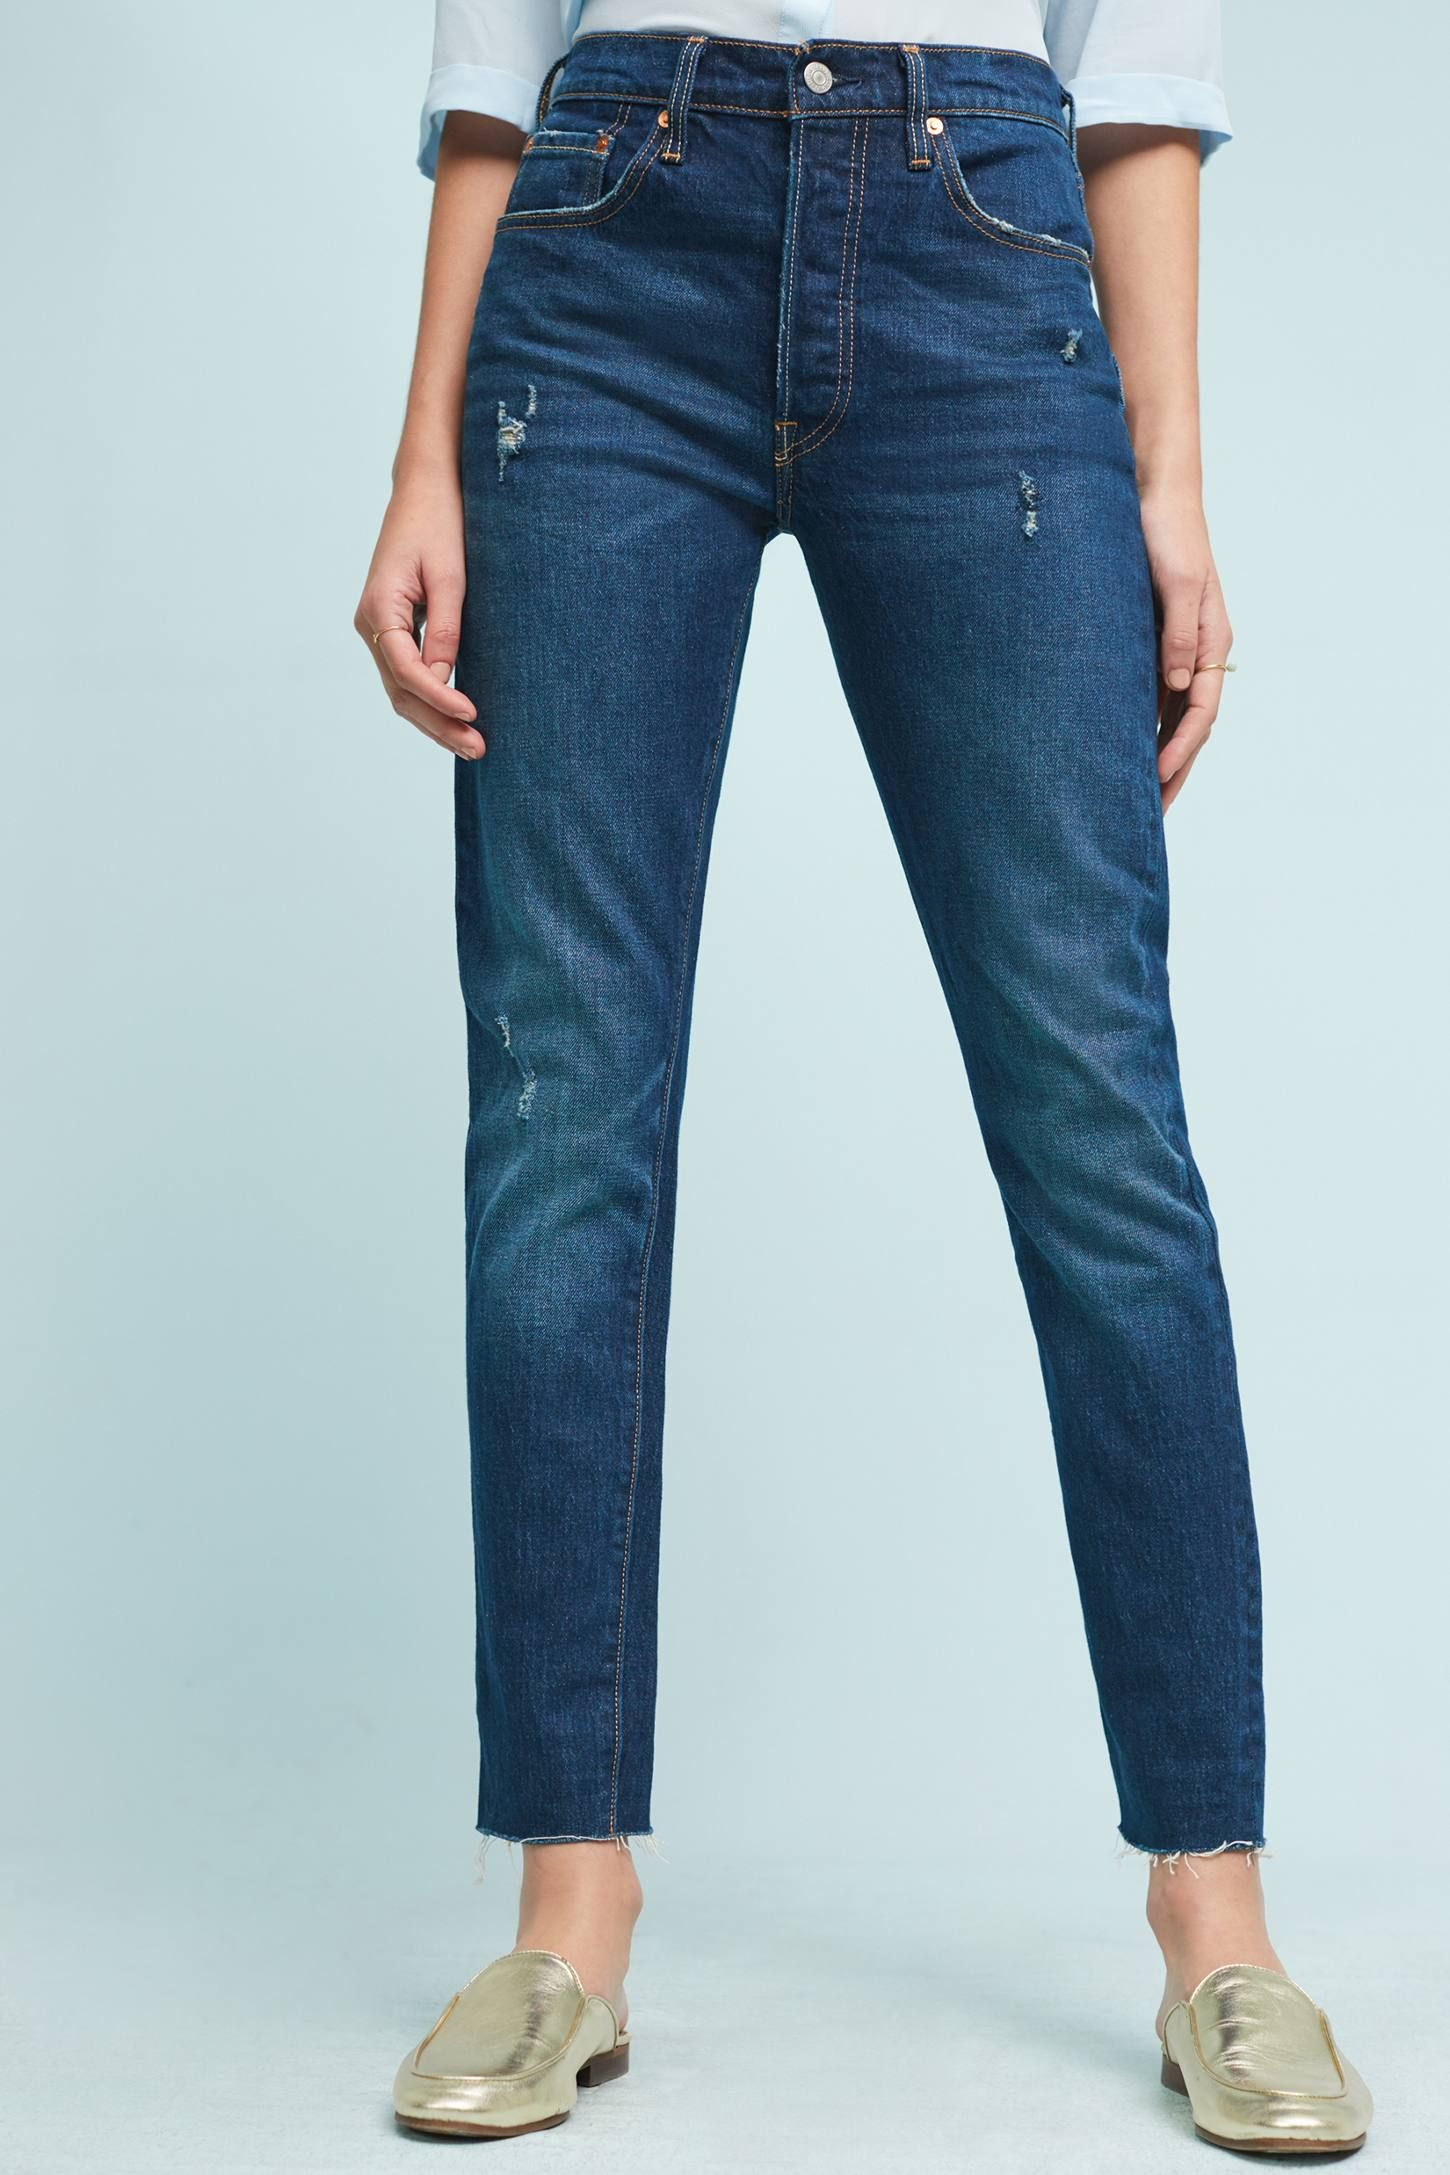 Slide View: 1: Levi's 501 Ultra High-Rise Skinny Jeans